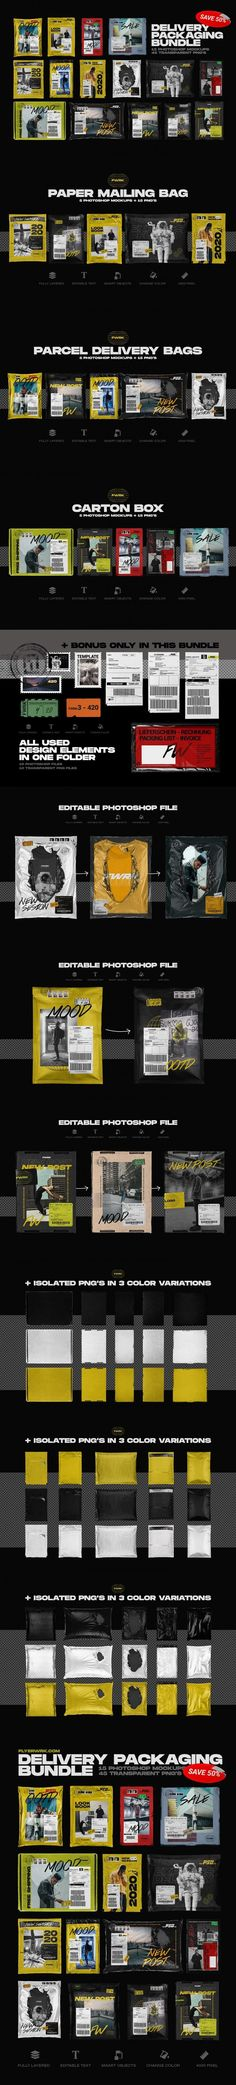 Delivery Packaging Mockup Bundle #trucks #business #background #stickers #smartphone #bloggertemplates #templates #package #authentic #vibes #MockupTemplate #photoshop #customizable #box #online #airplane #flatlay #MockupTemplate #mockupkit Mockup Templates, Delivery Bag, Polaroid Frame, Bag Mockup, Photoshop, Packaging, Blogger Templates, Life Photography, Airplane